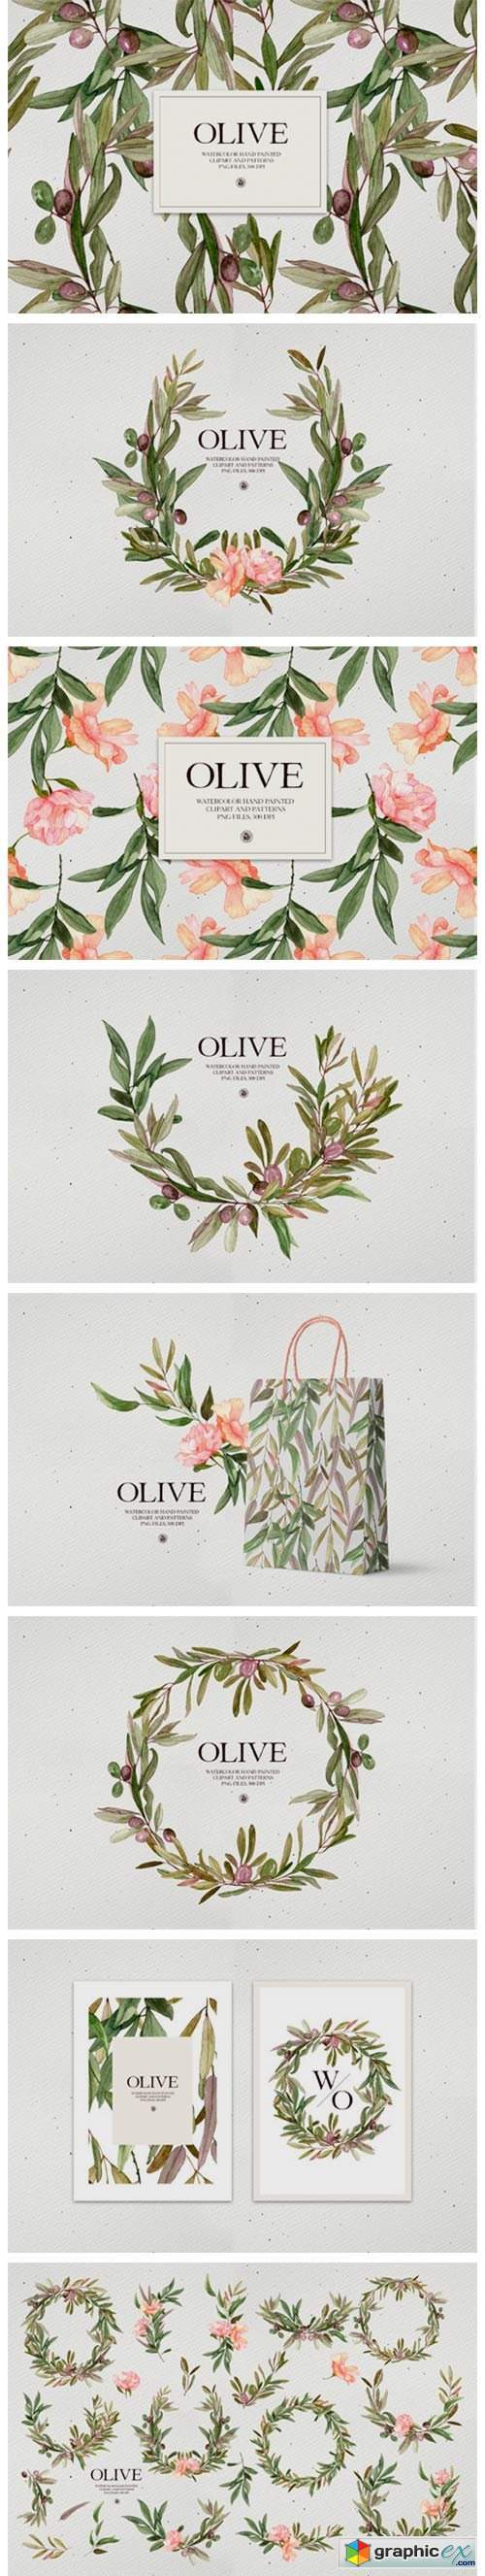 Watercolor Olive - Patterns and Frames